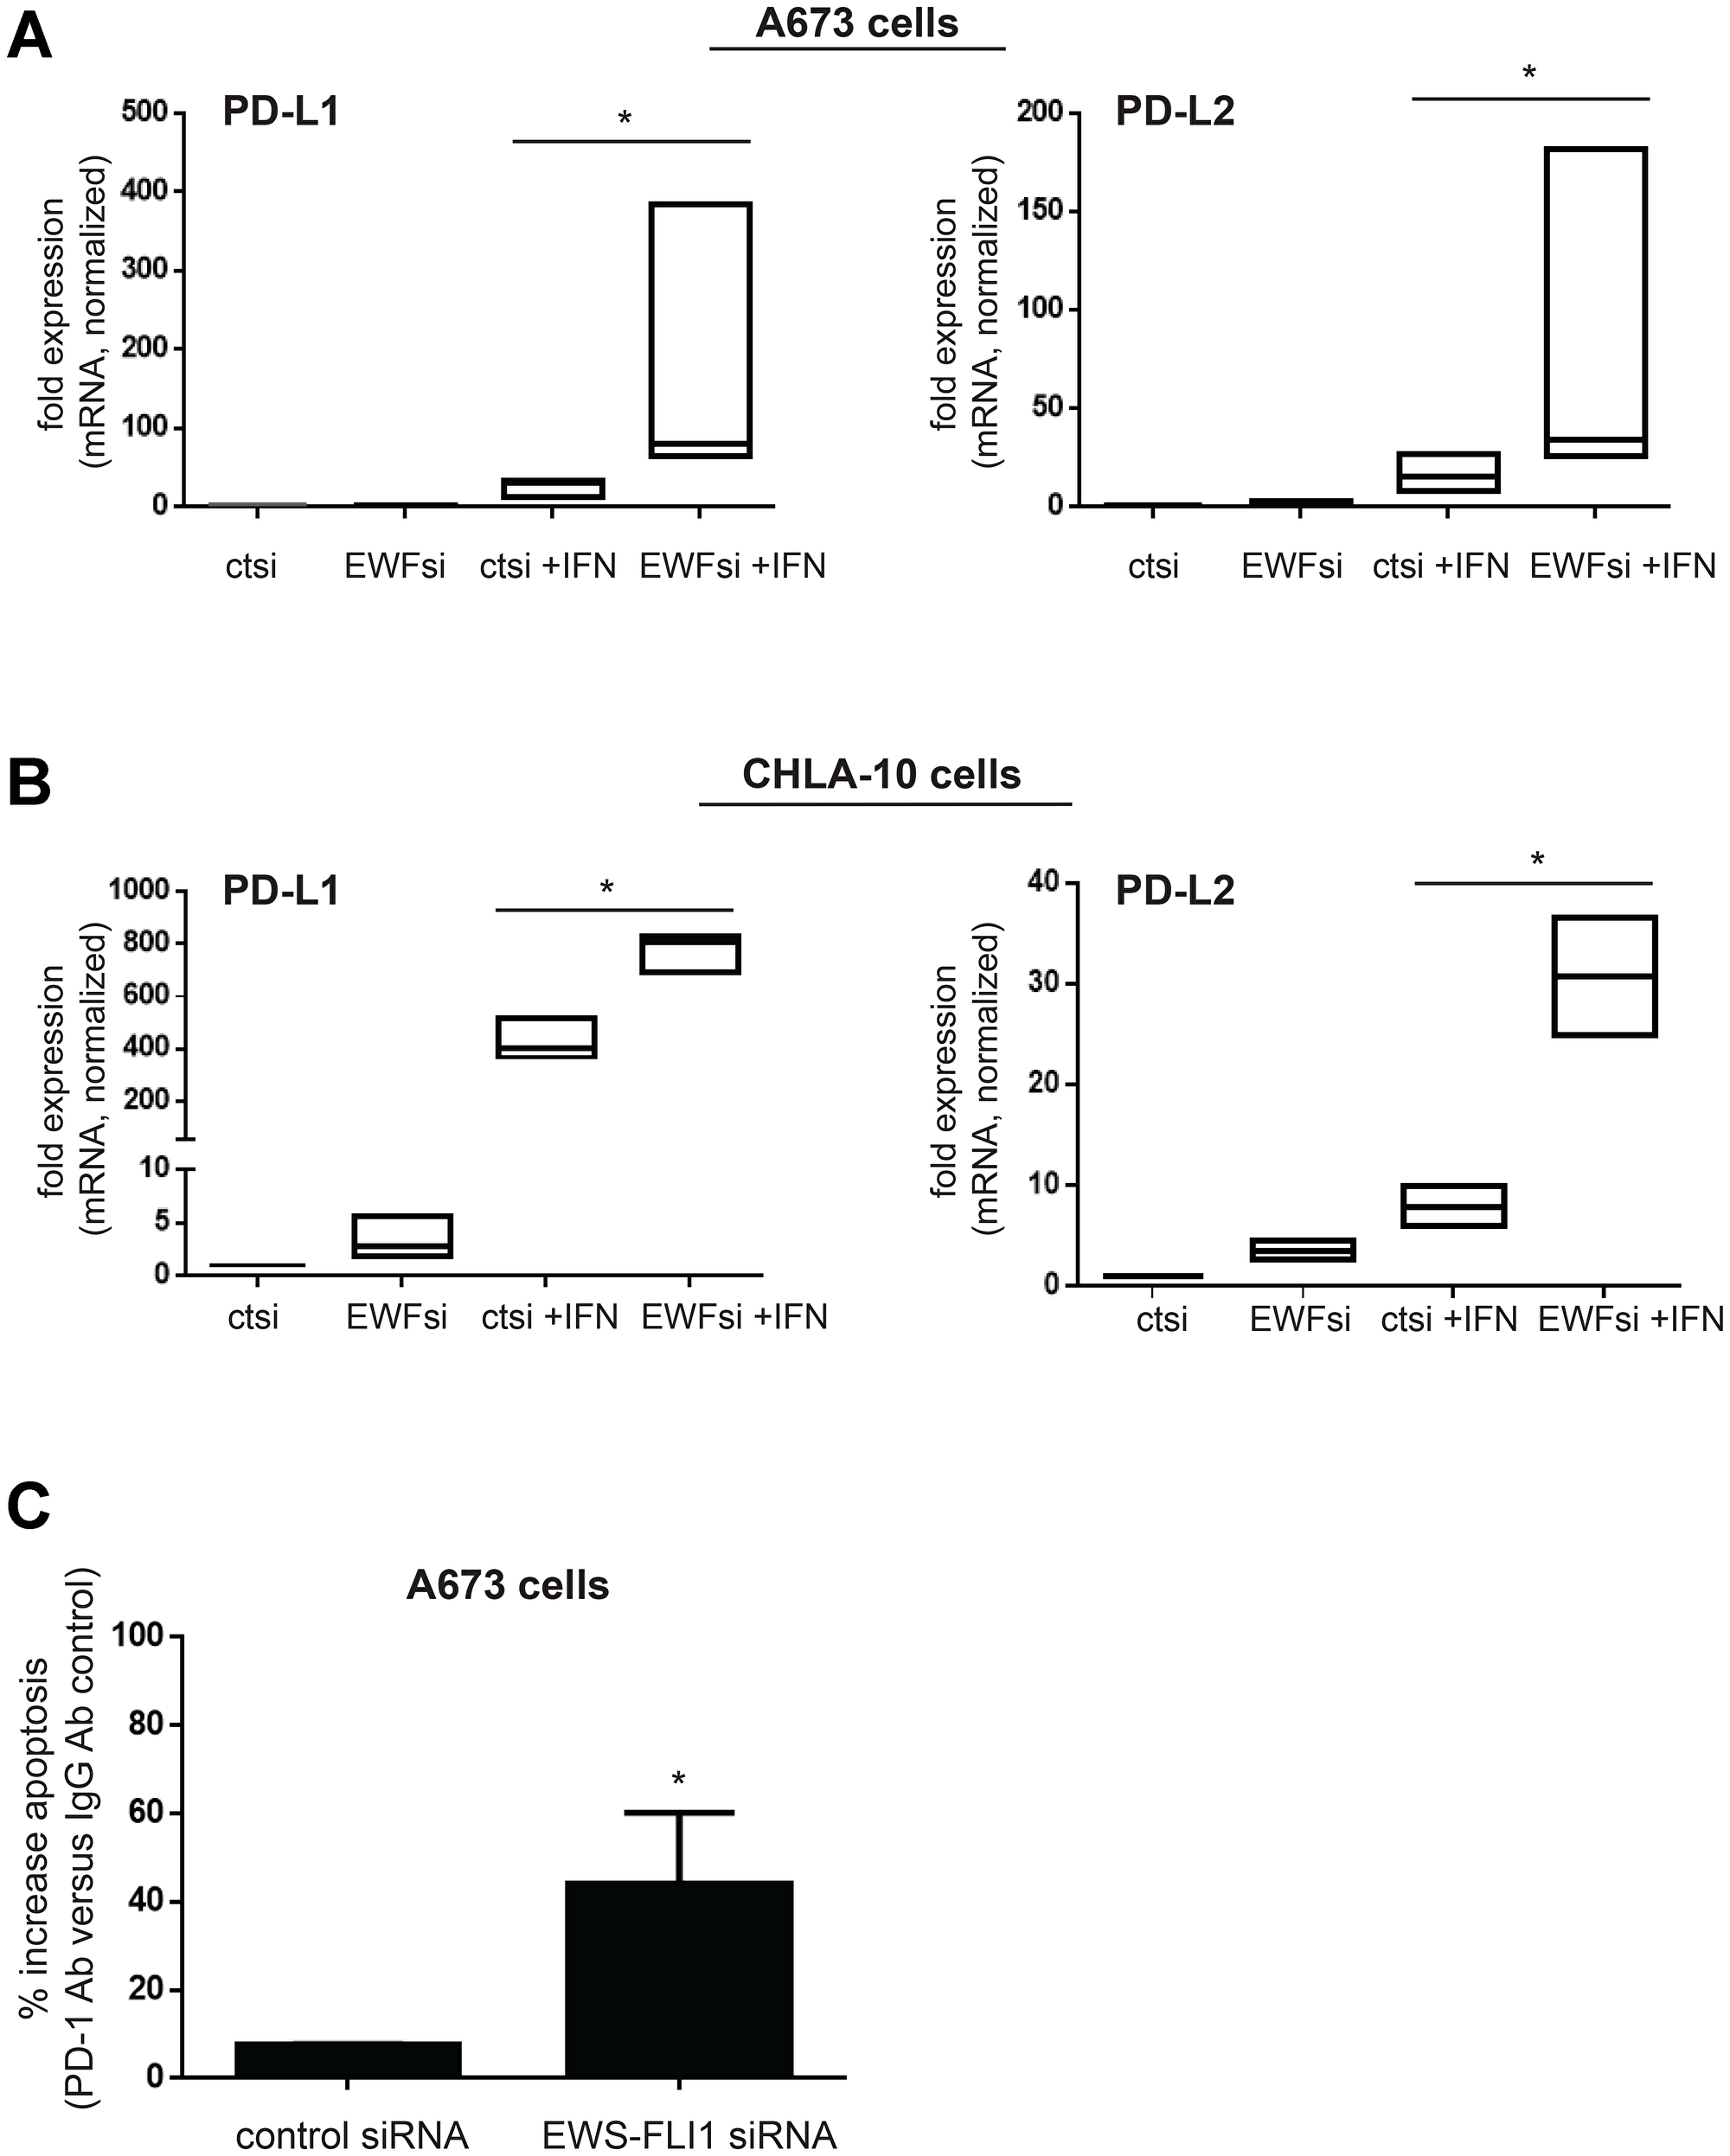 Lower EWS-FLI1 level results in upregulation of PD-L1 and PD-L2 in Ewing sarcoma tumor cells and blocking PD-1 increases T-cell mediated tumor cell apoptosis.